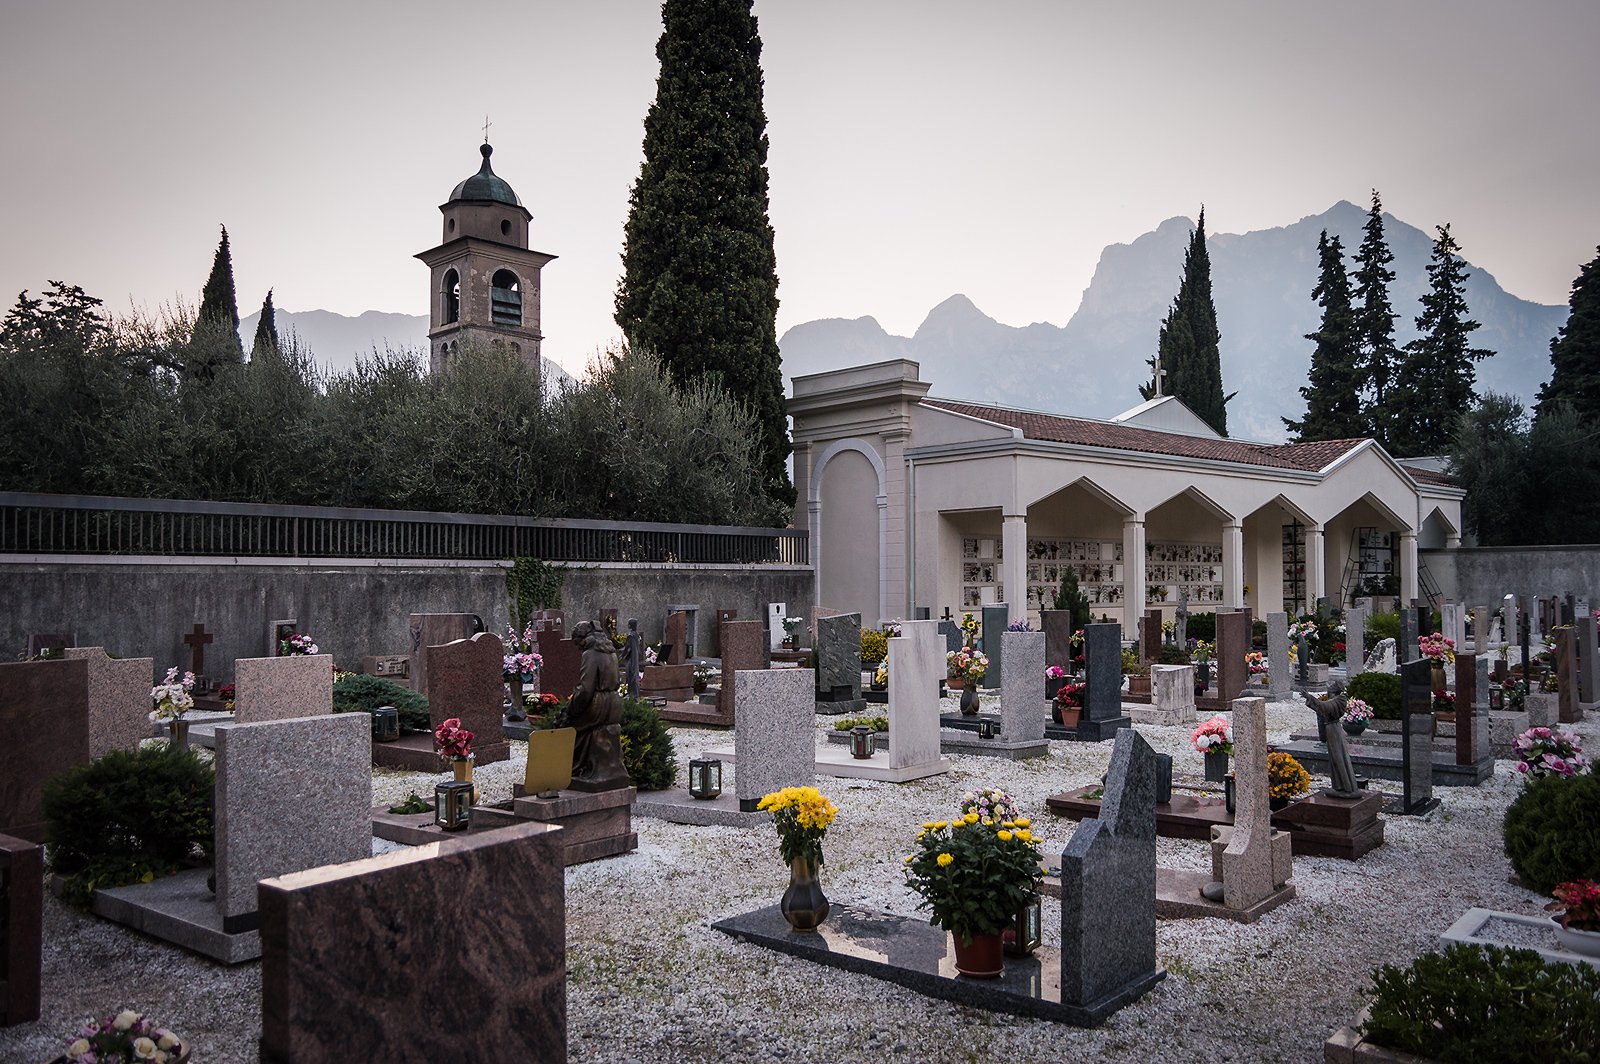 Torbole-Church-Graveyard